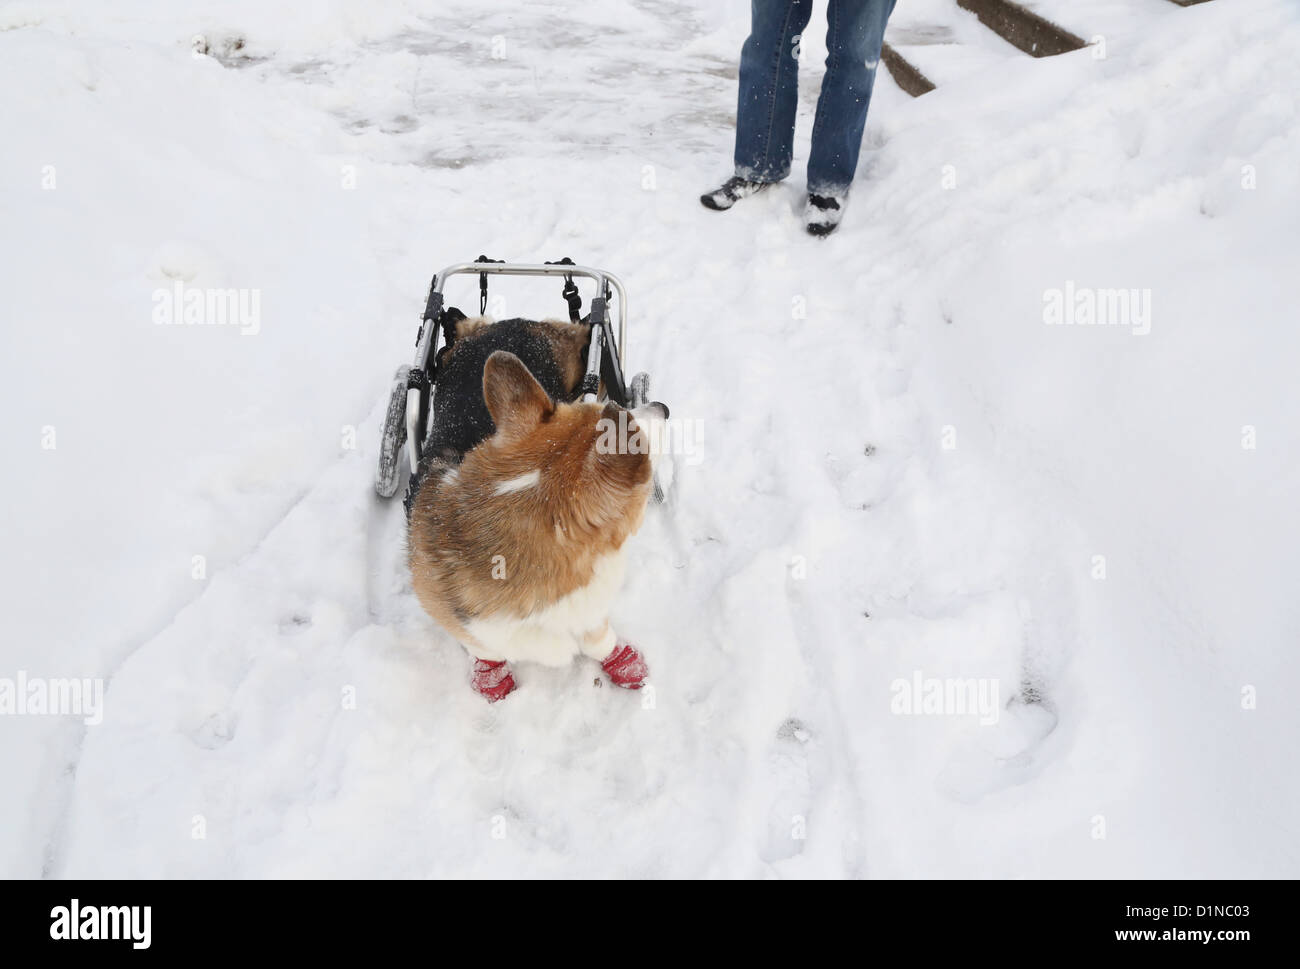 A disabled dog in the snow looks back at his owner. - Stock Image